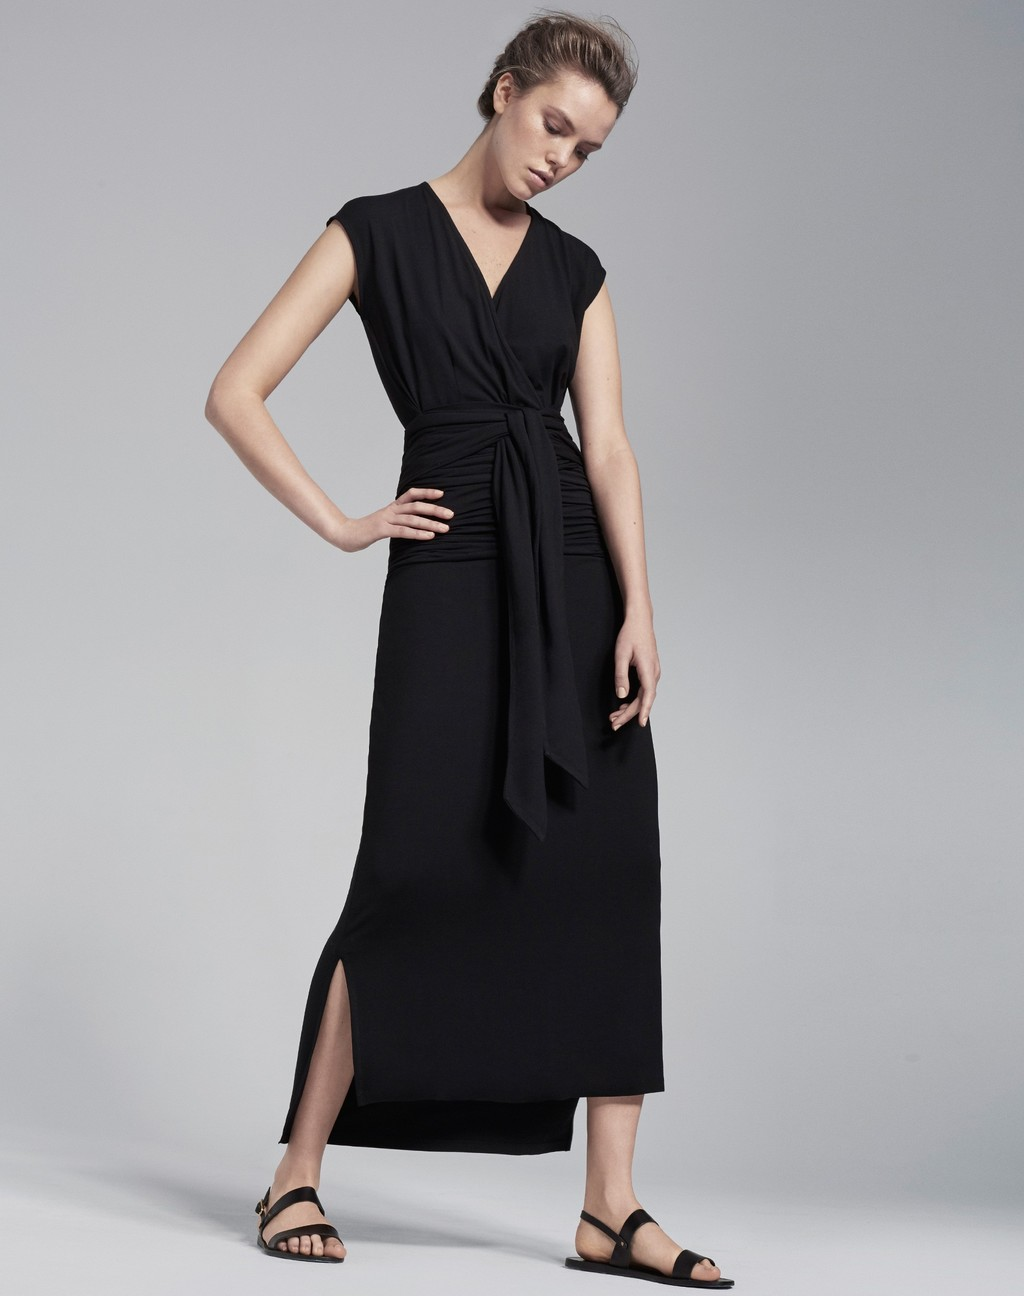 Ruched Wrap Maxi Dress Black - style: faux wrap/wrap; neckline: v-neck; pattern: plain; sleeve style: sleeveless; length: ankle length; waist detail: twist front waist detail/nipped in at waist on one side/soft pleats/draping/ruching/gathering waist detail; predominant colour: black; occasions: casual, evening, creative work; fit: body skimming; fibres: polyester/polyamide - stretch; sleeve length: sleeveless; pattern type: fabric; texture group: jersey - stretchy/drapey; season: s/s 2016